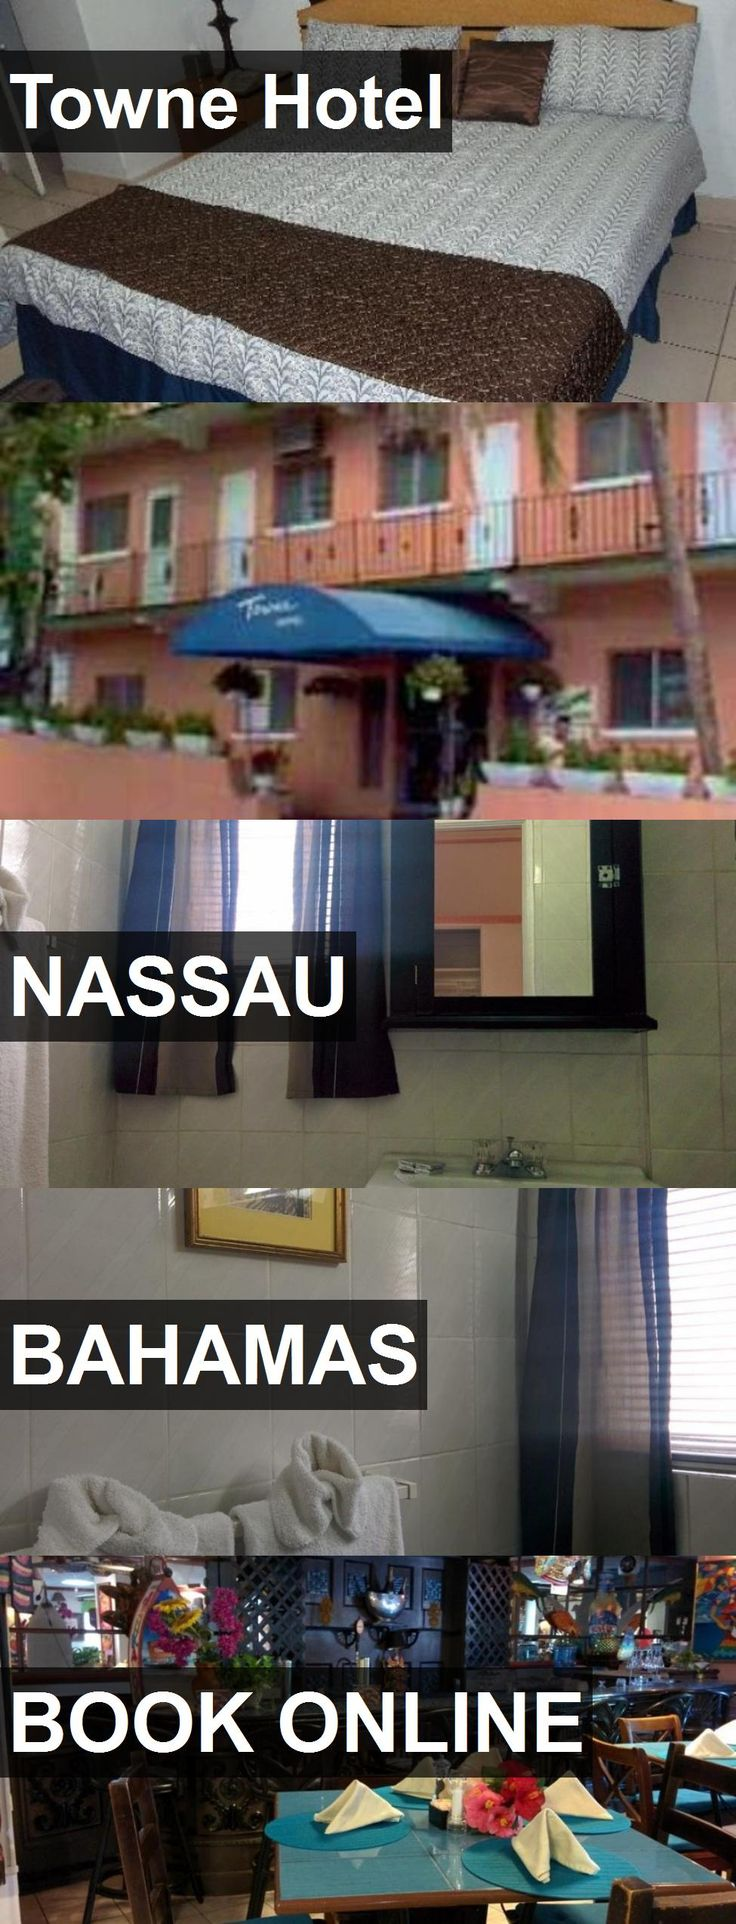 1740 house tripadvisor - Towne Hotel In Nassau Bahamas For More Information Photos Reviews And Best